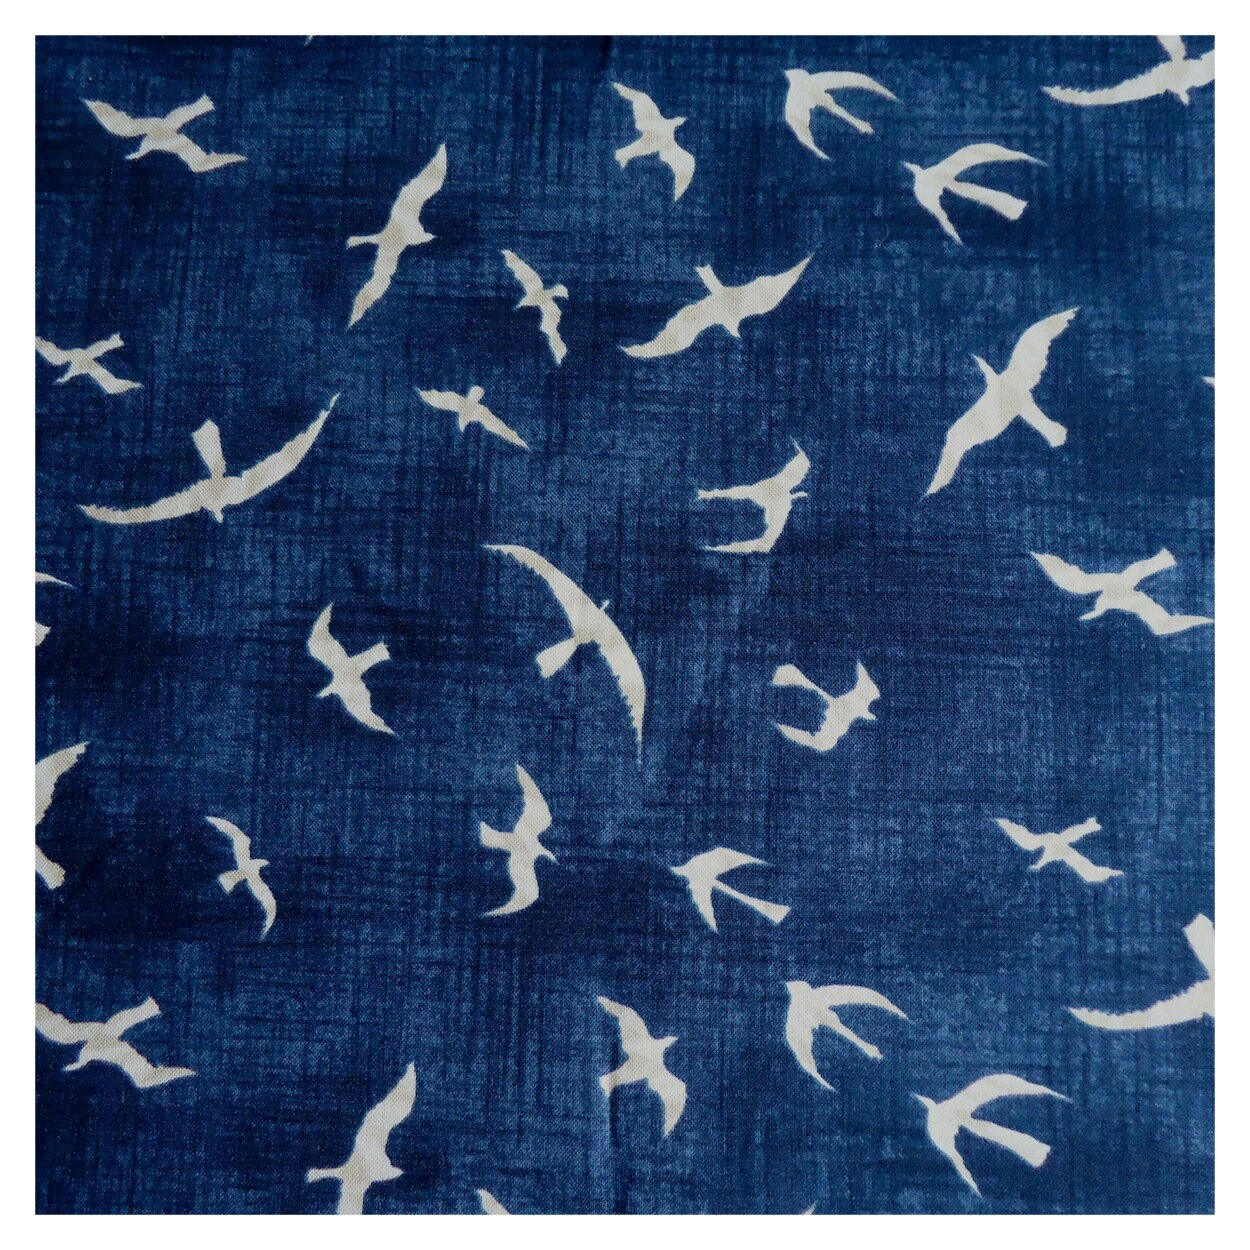 Seagull fabric by Janet Clare: Hearty Good Wishes at Moda Japan